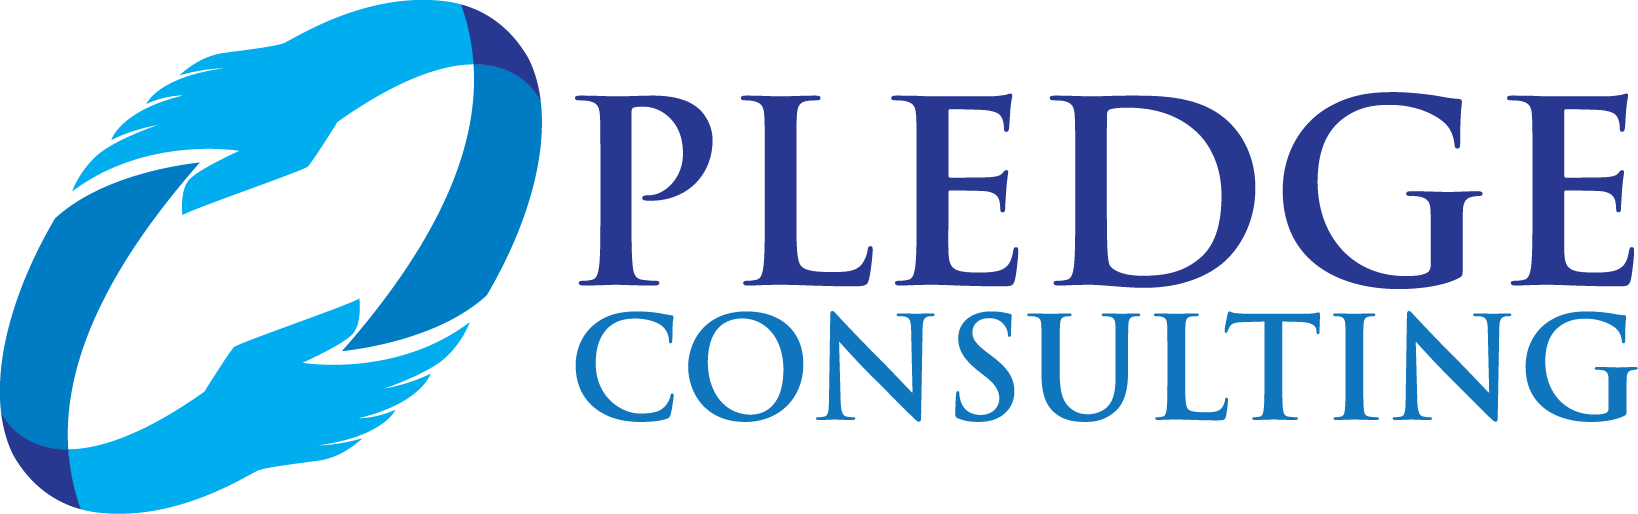 Pledge Consulting_Final[8296]